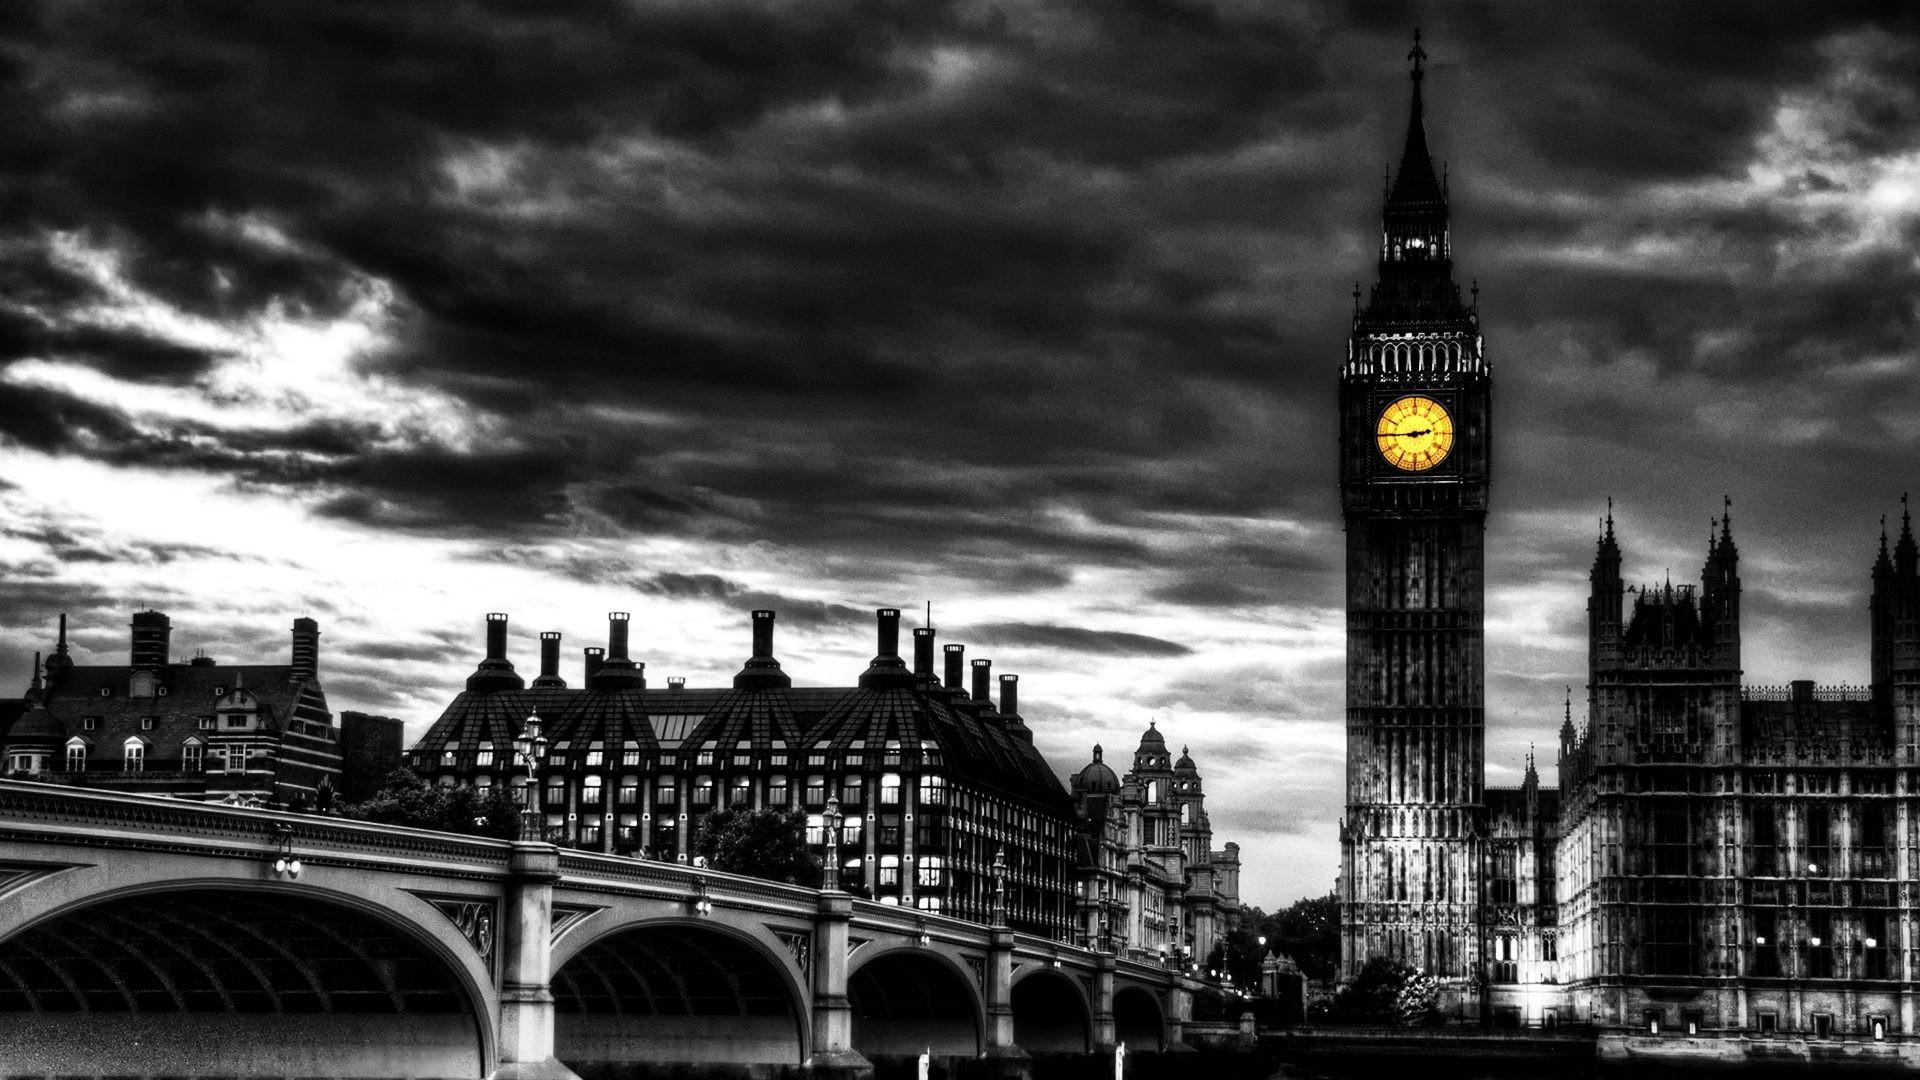 London black and white wallpapers desktop obaasima black for Black and white london mural wallpaper